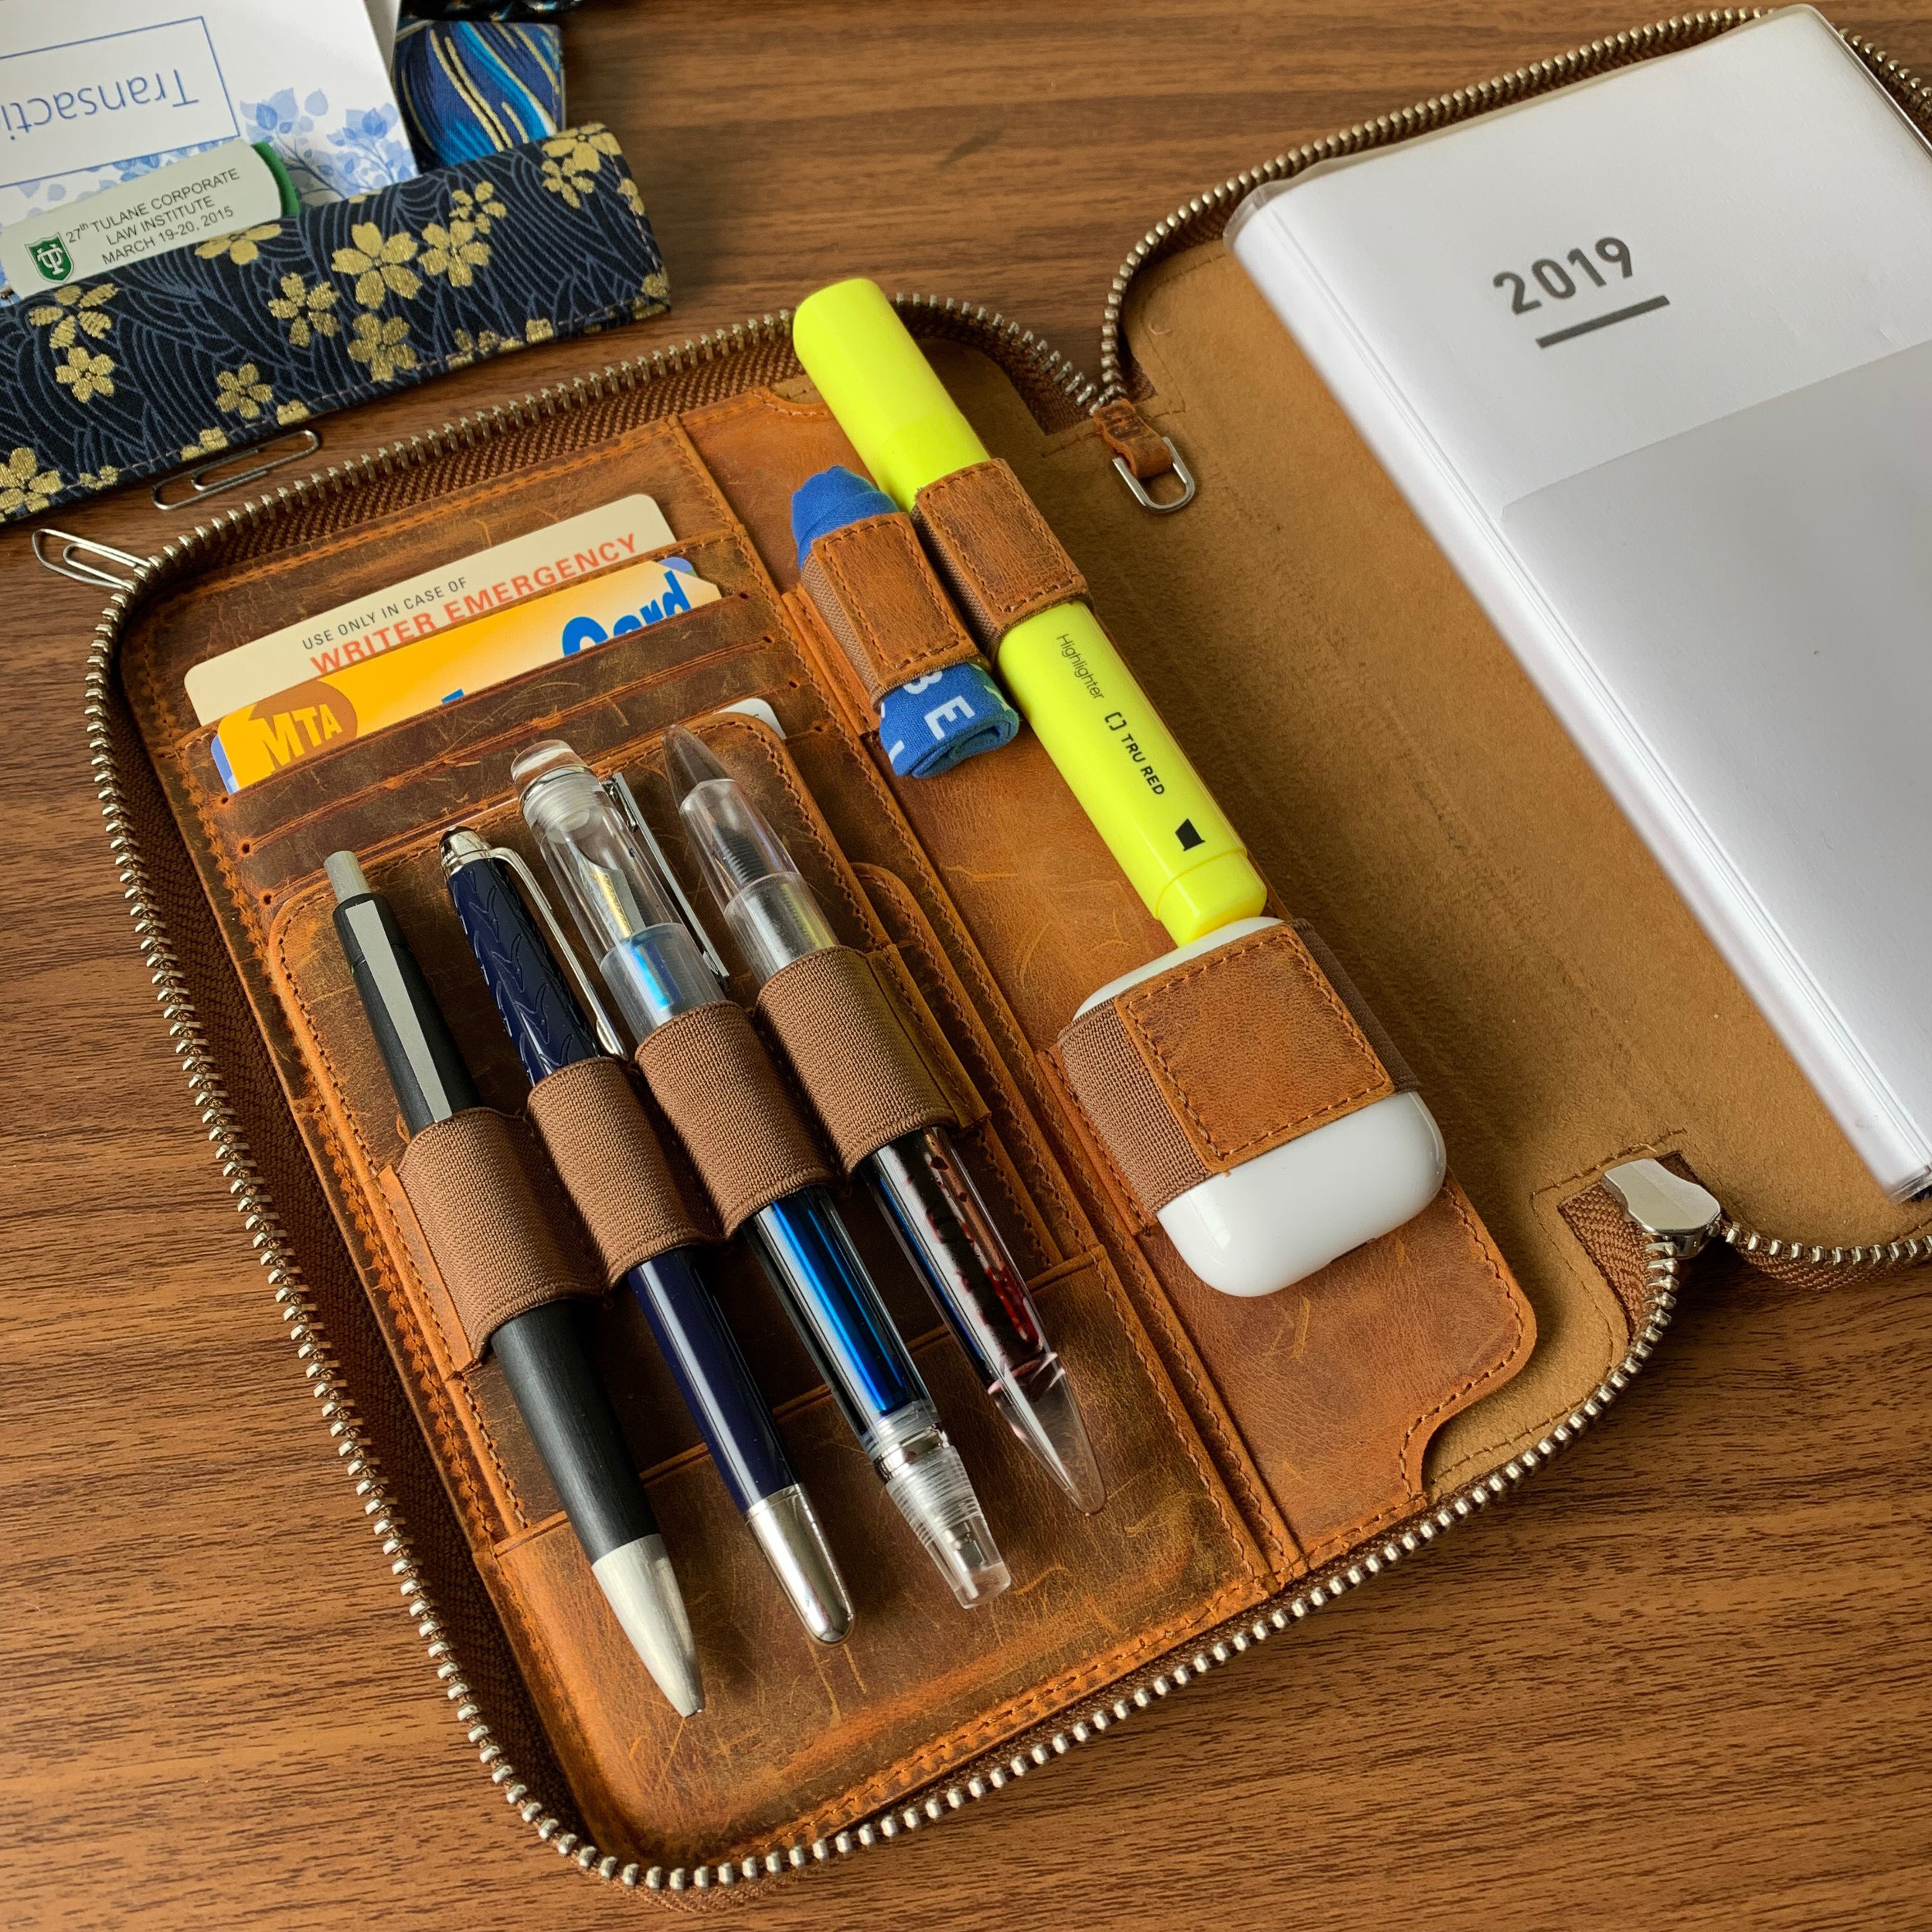 I updated the EDC this week! Check out my review of the Galen Leather A5 Zipfolio - link below.